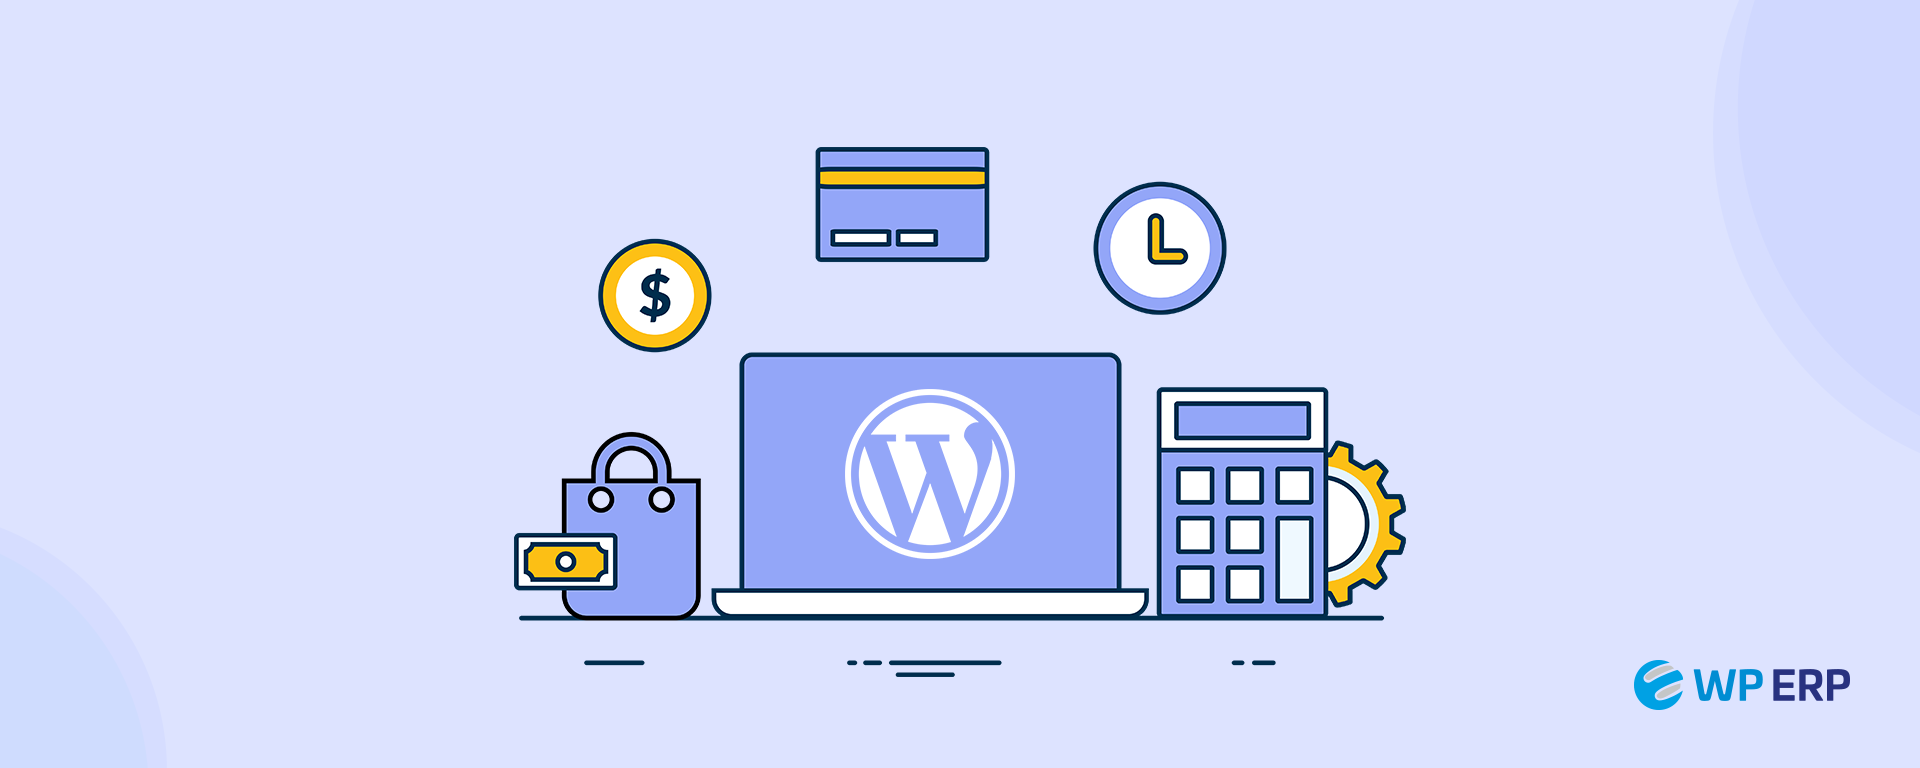 WordPress Accounting plugin for small business